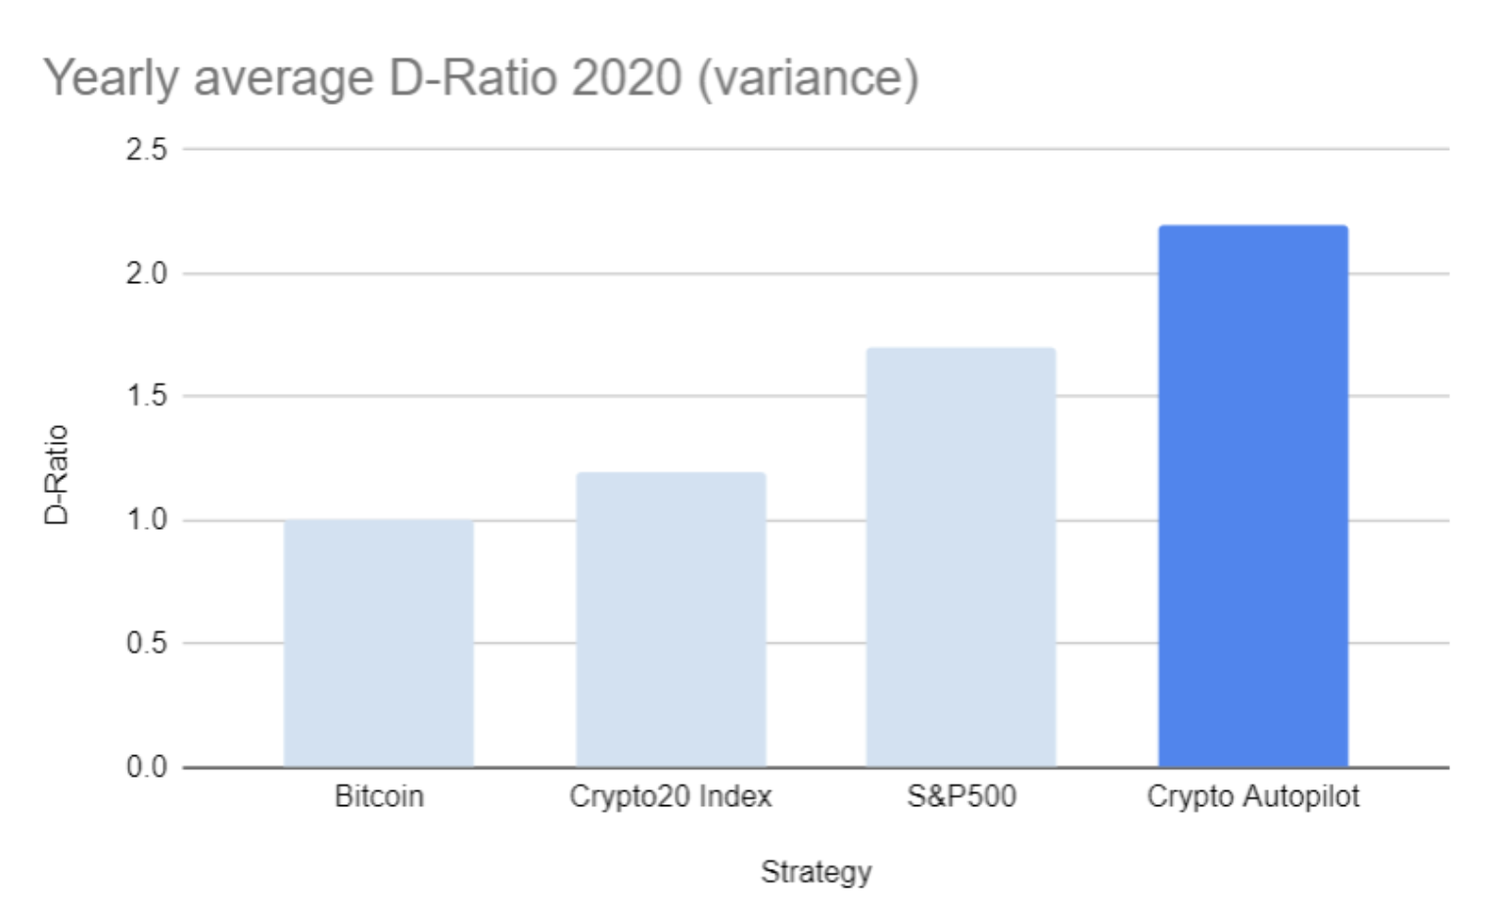 yearly average Diversification Ratio for 2020 of the Crypto Autopilot is 2.2